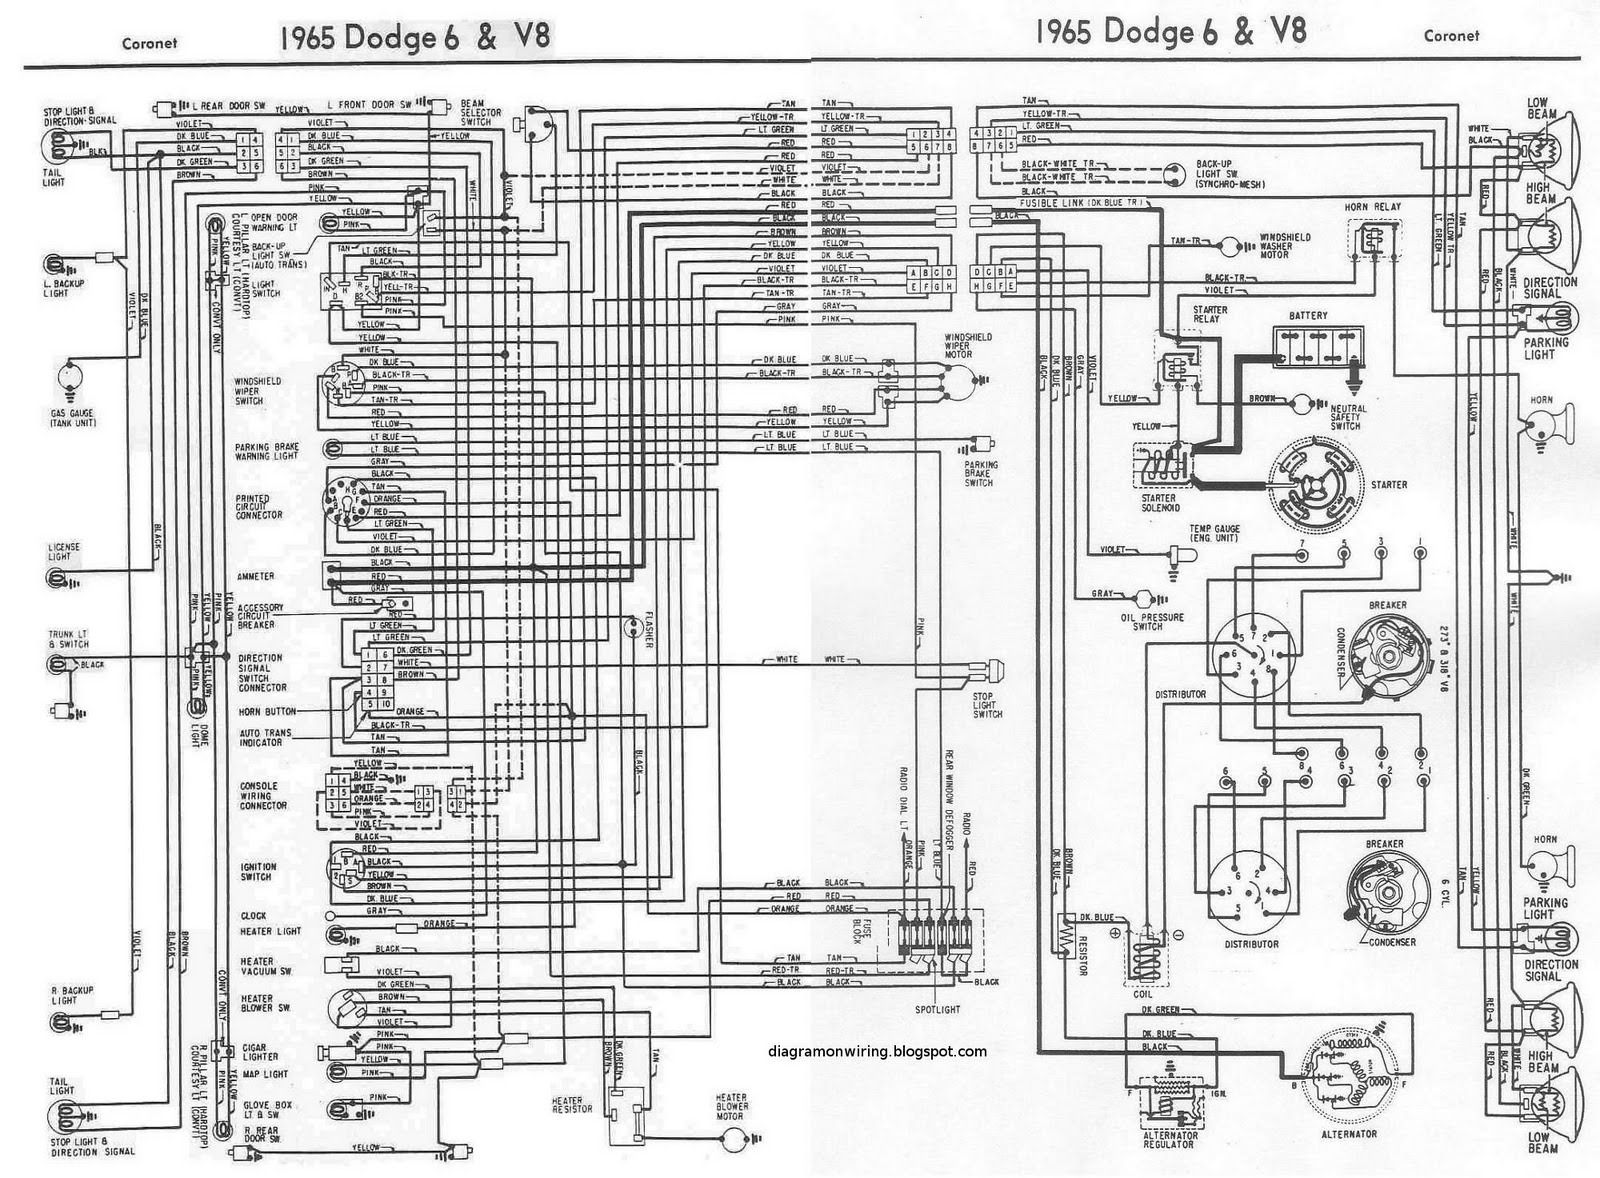 1965 el camino wiring diagram 1965 chrysler newport wiring diagram #14